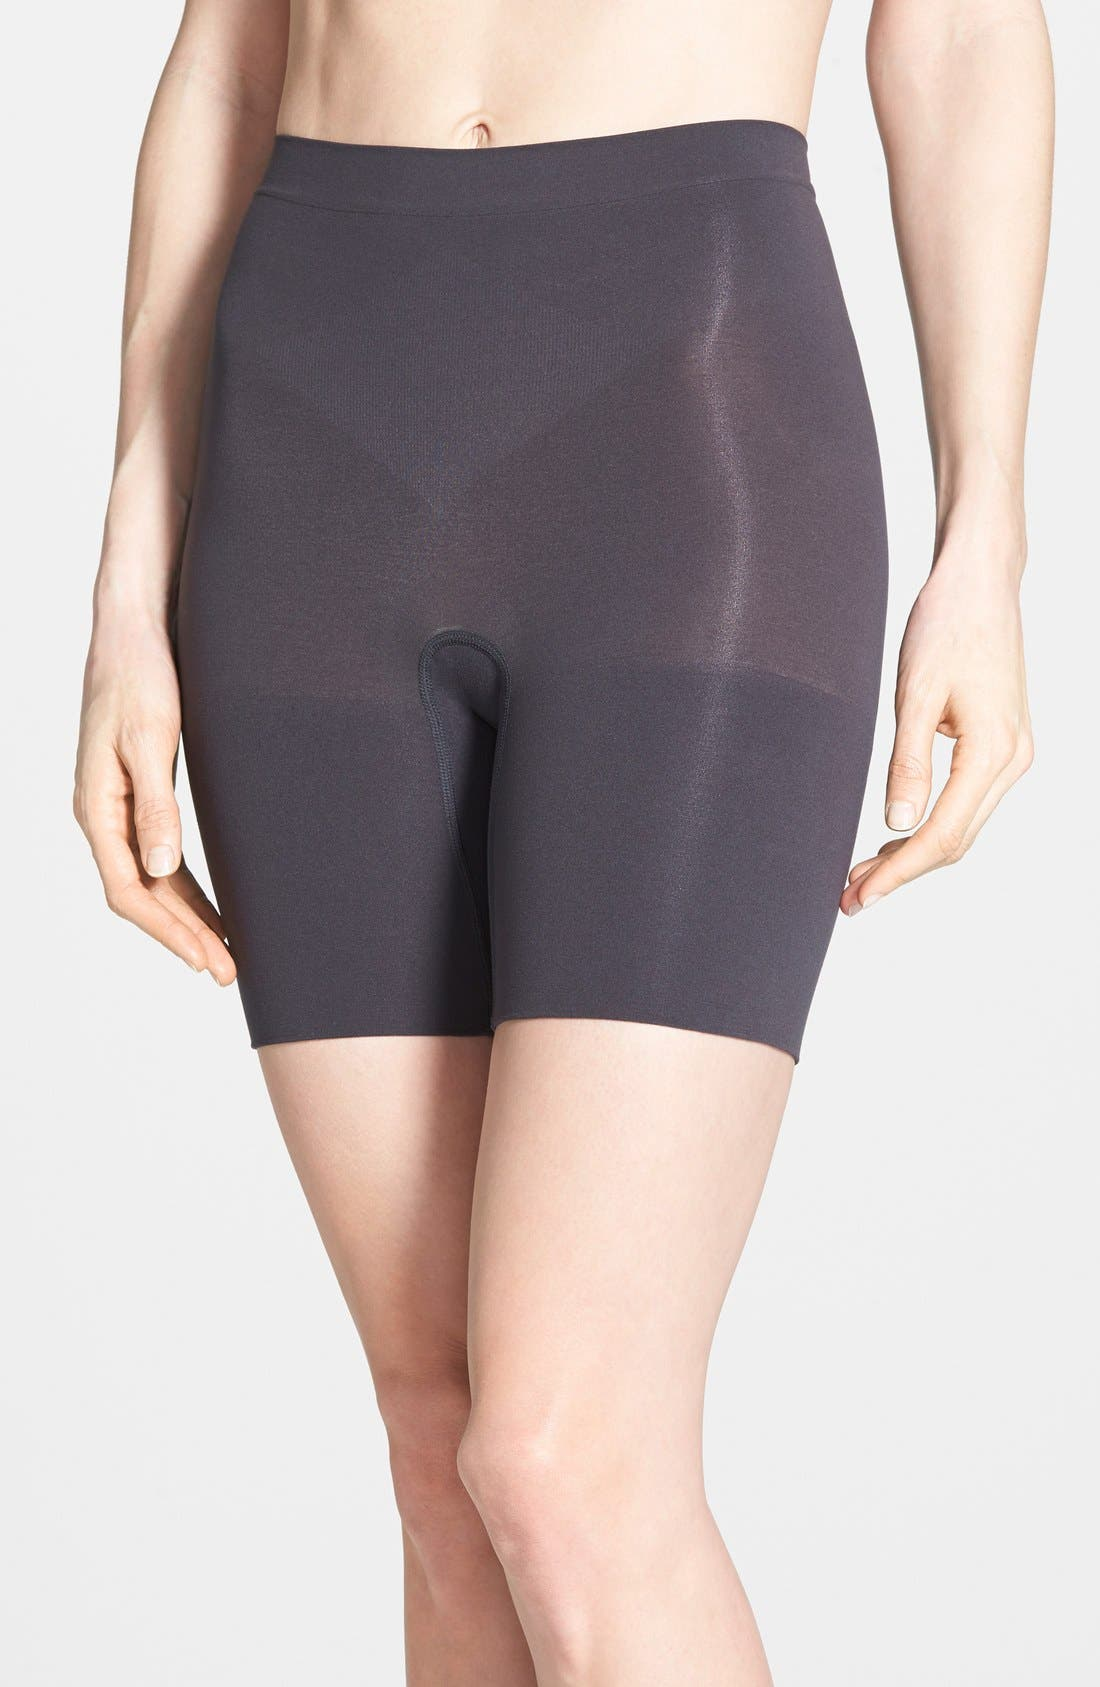 Power Short Mid Thigh Shaper,                             Main thumbnail 1, color,                             Very Black